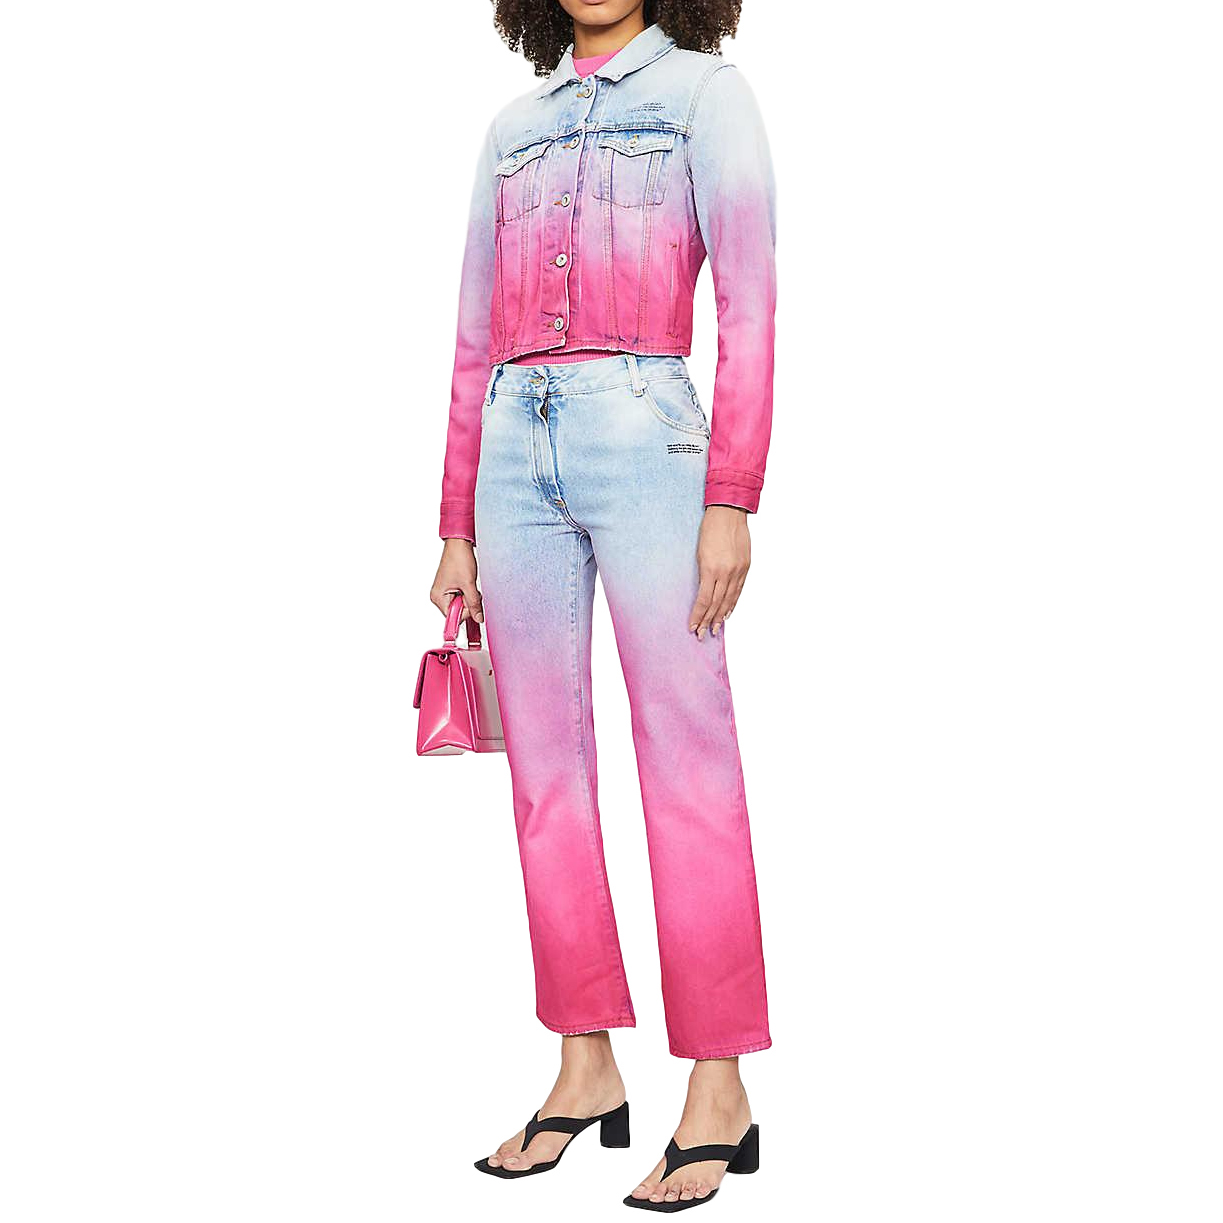 Off White Virgil Abloh pink and blue gradient jeans